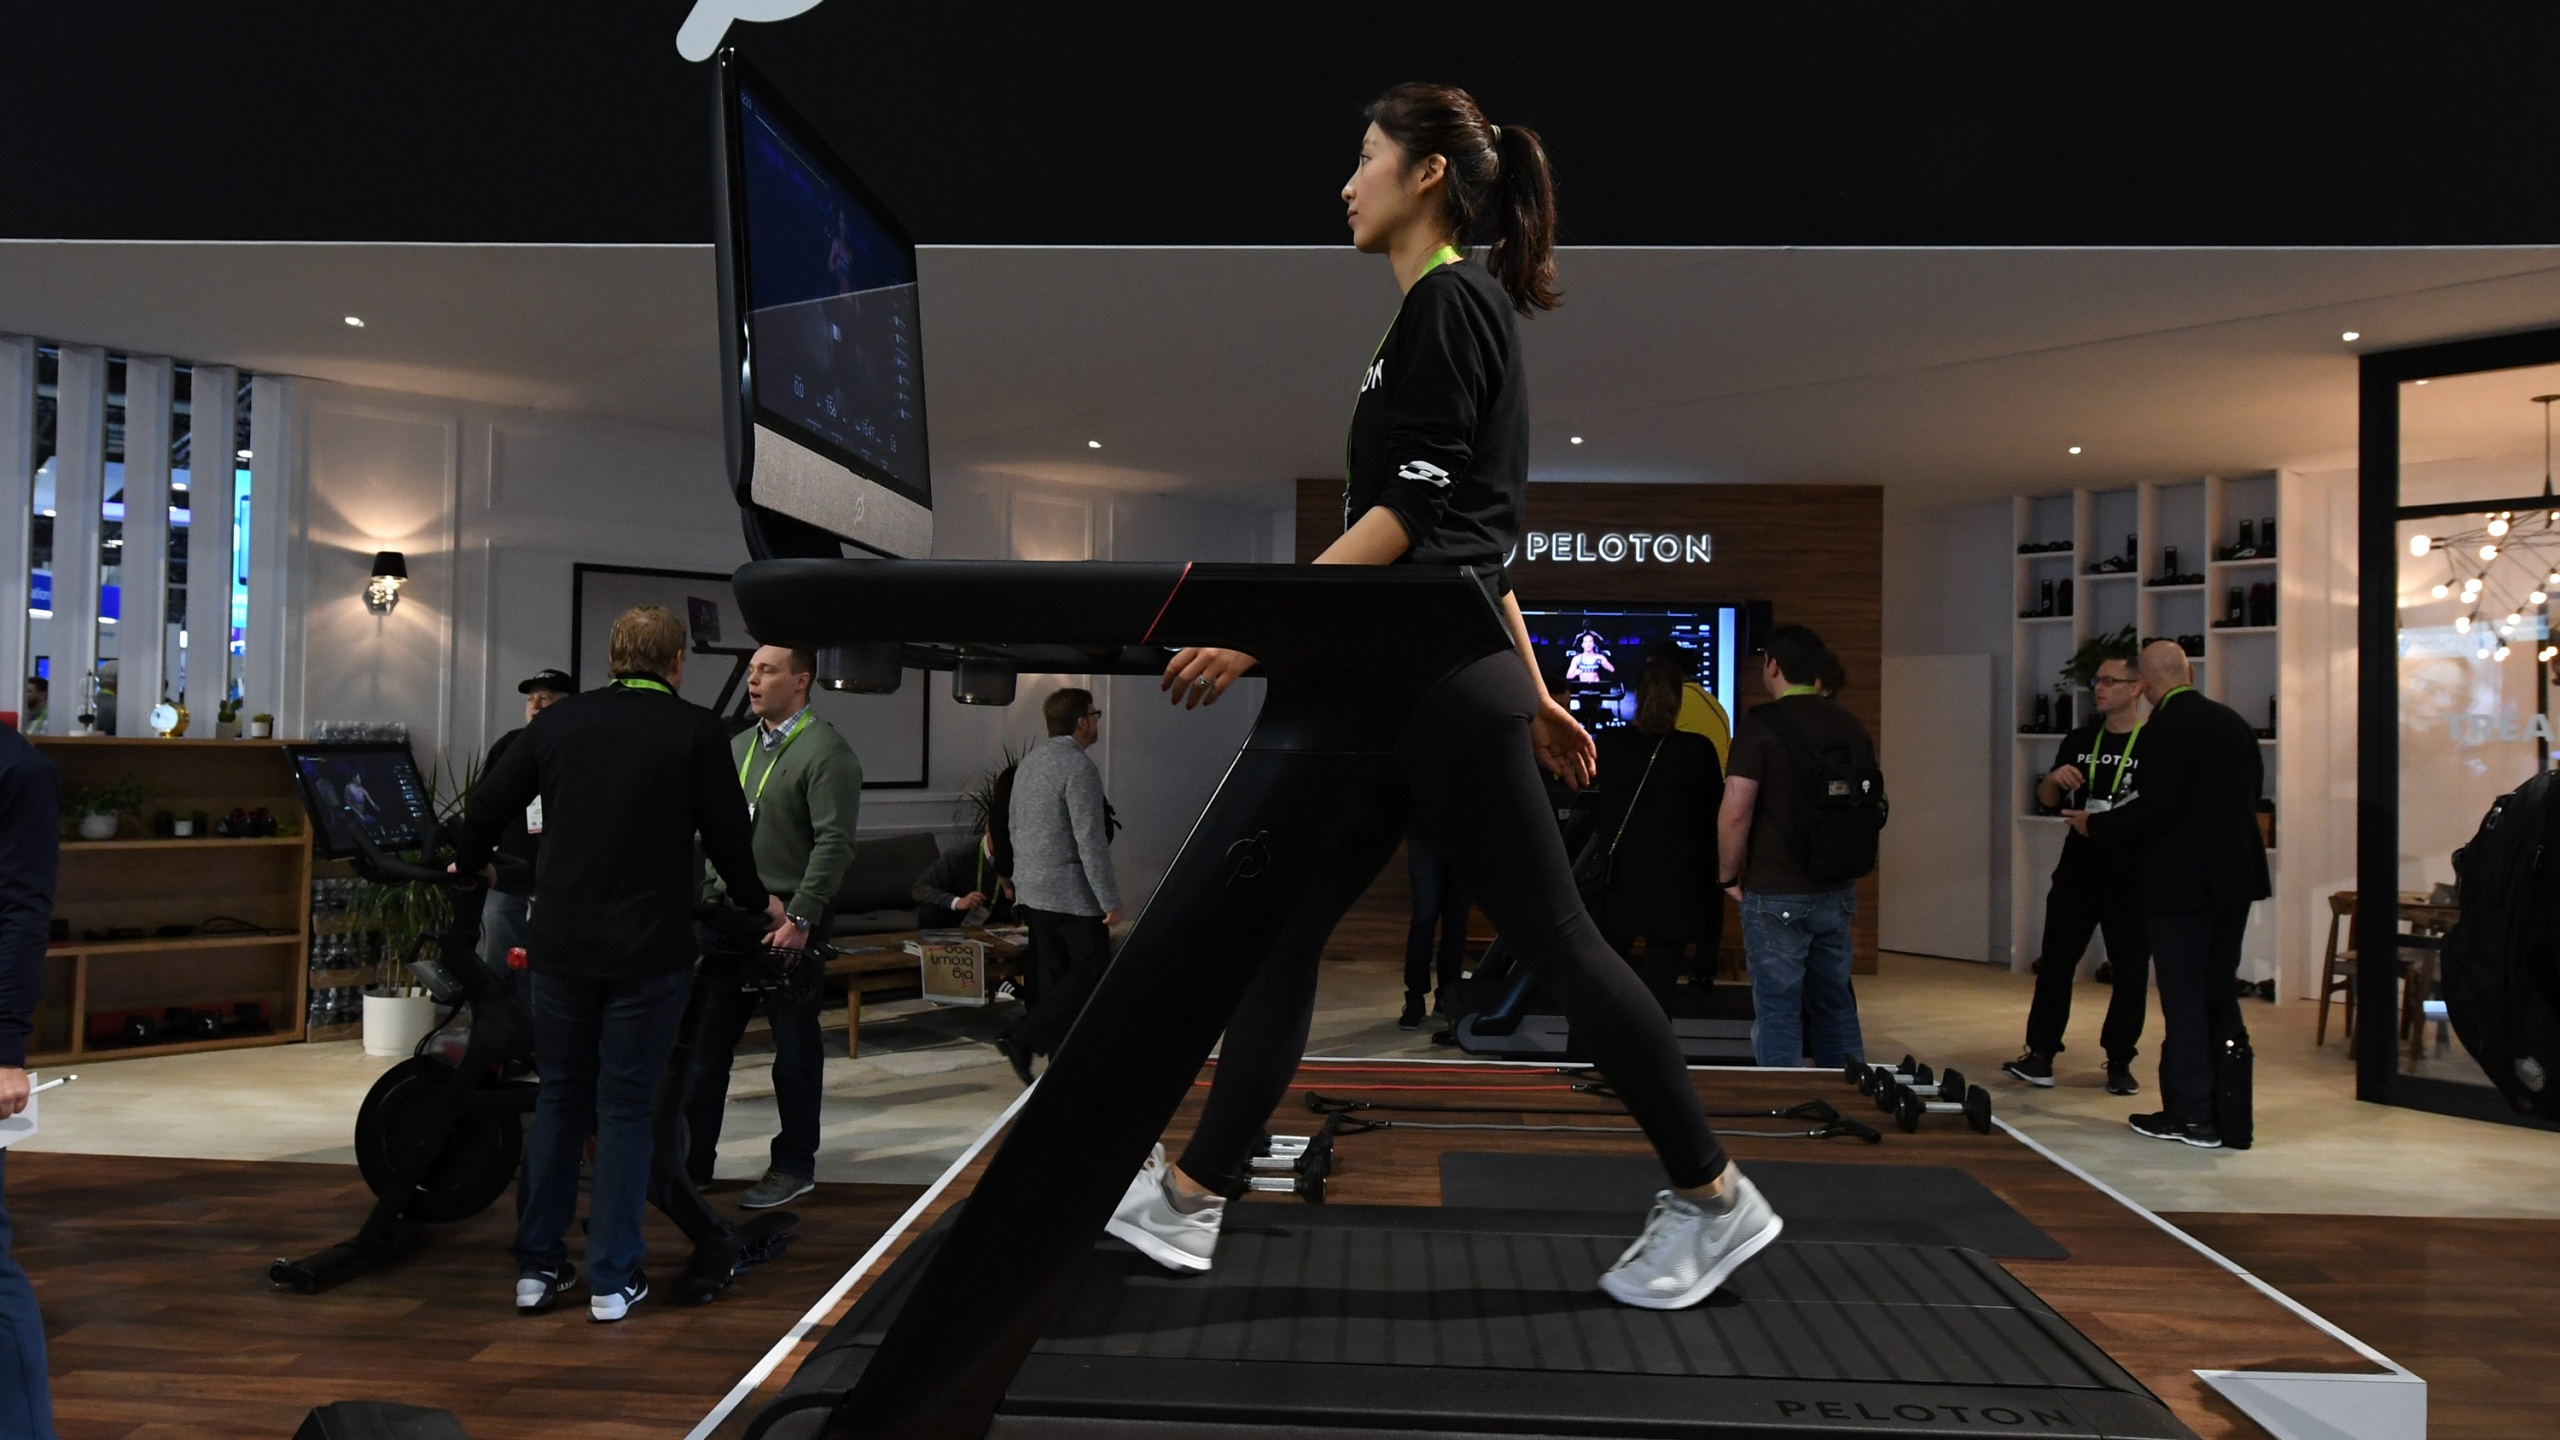 Maggie Lu uses a Peloton Tread treadmill during CES 2018 at the Las Vegas Convention Center on January 11, 2018 in Las Vegas, Nevada. (Ethan Miller/Getty Images)